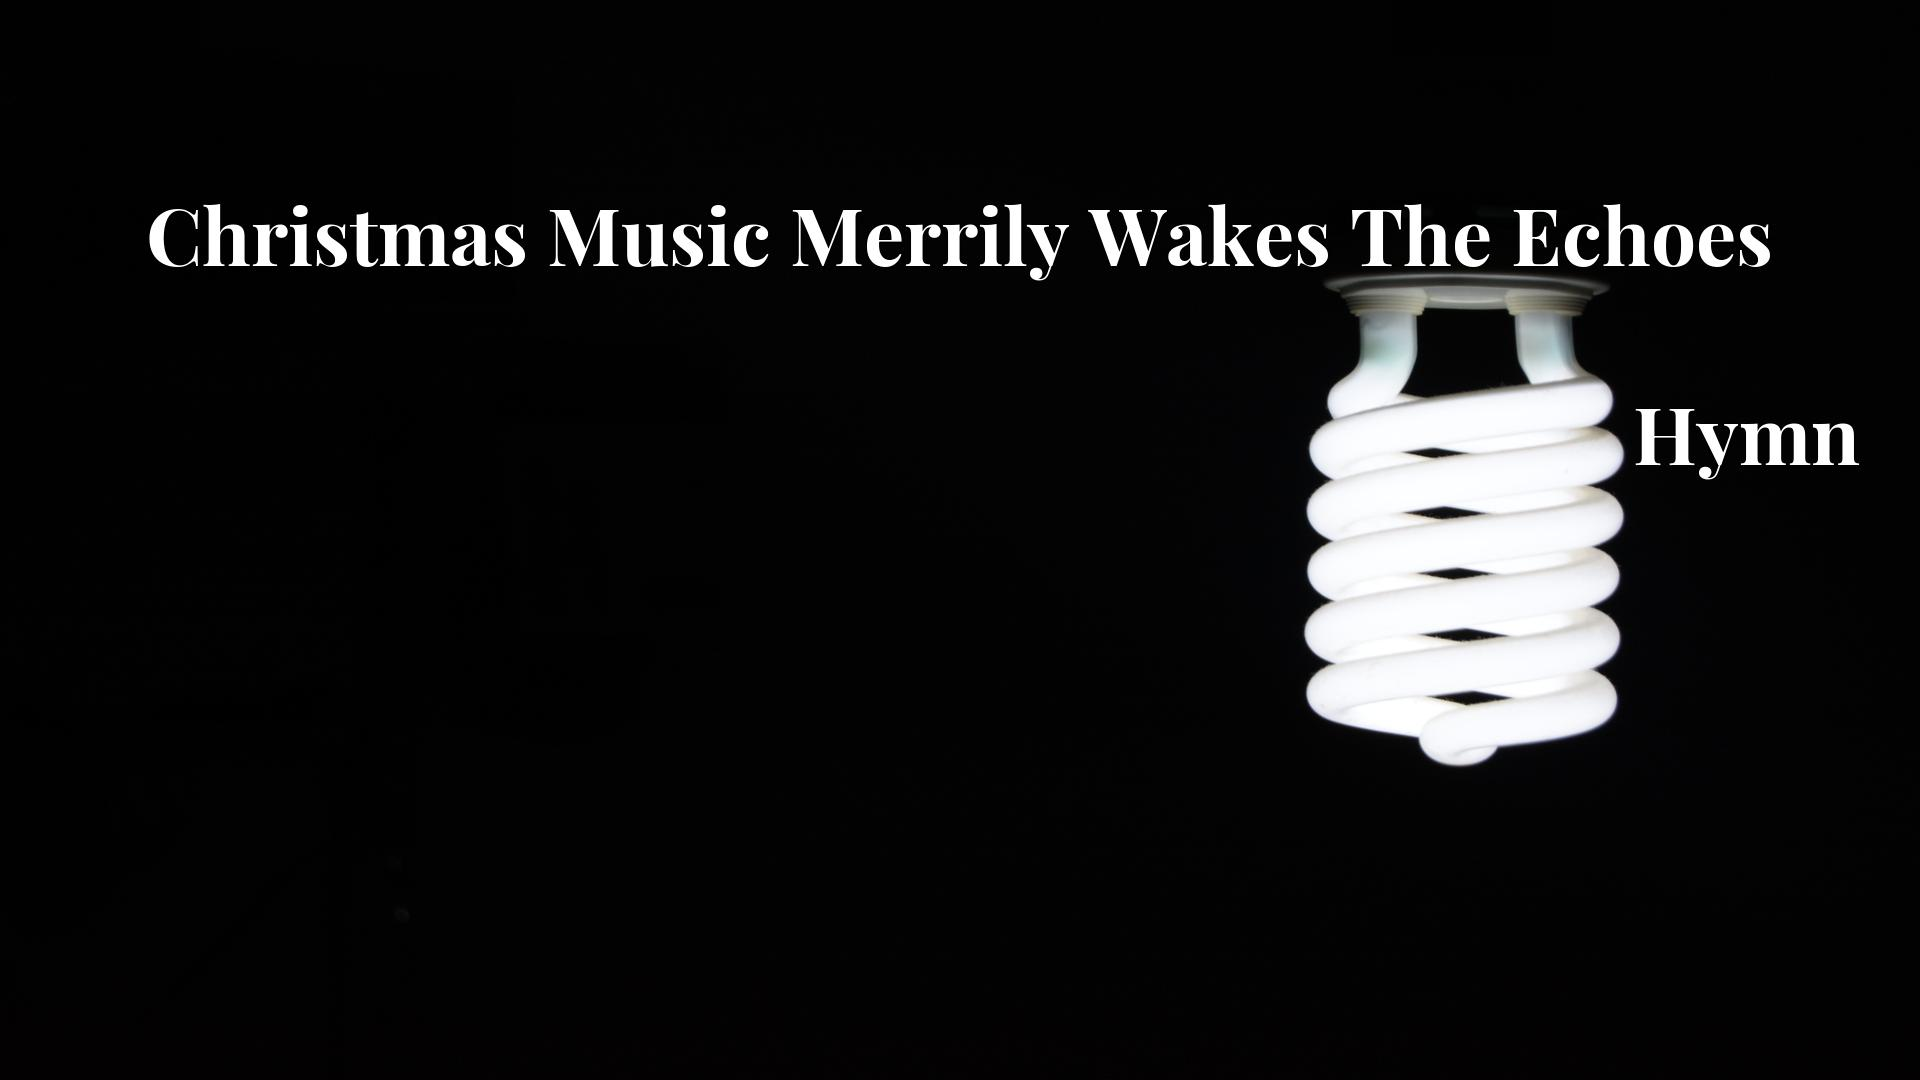 Christmas Music Merrily Wakes The Echoes - Hymn